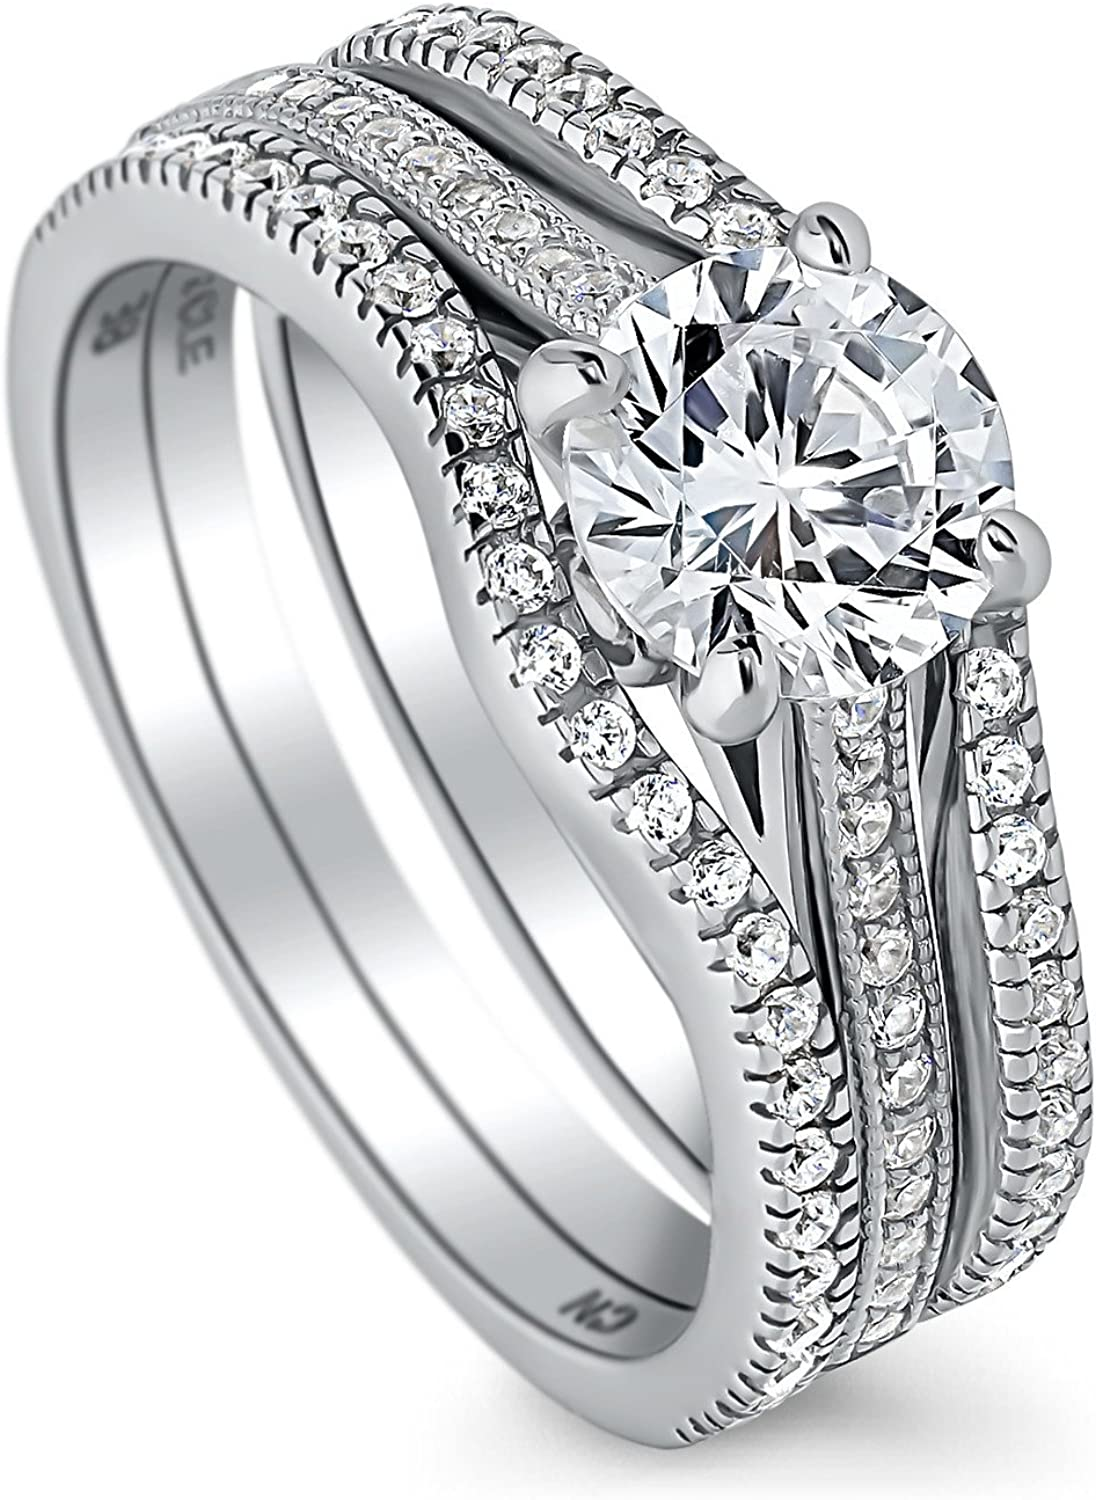 BERRICLE Rhodium Plated Sterling Silver Round Cubic Zirconia CZ Solitaire Engagement Wedding Ring Set 1.45 CTW